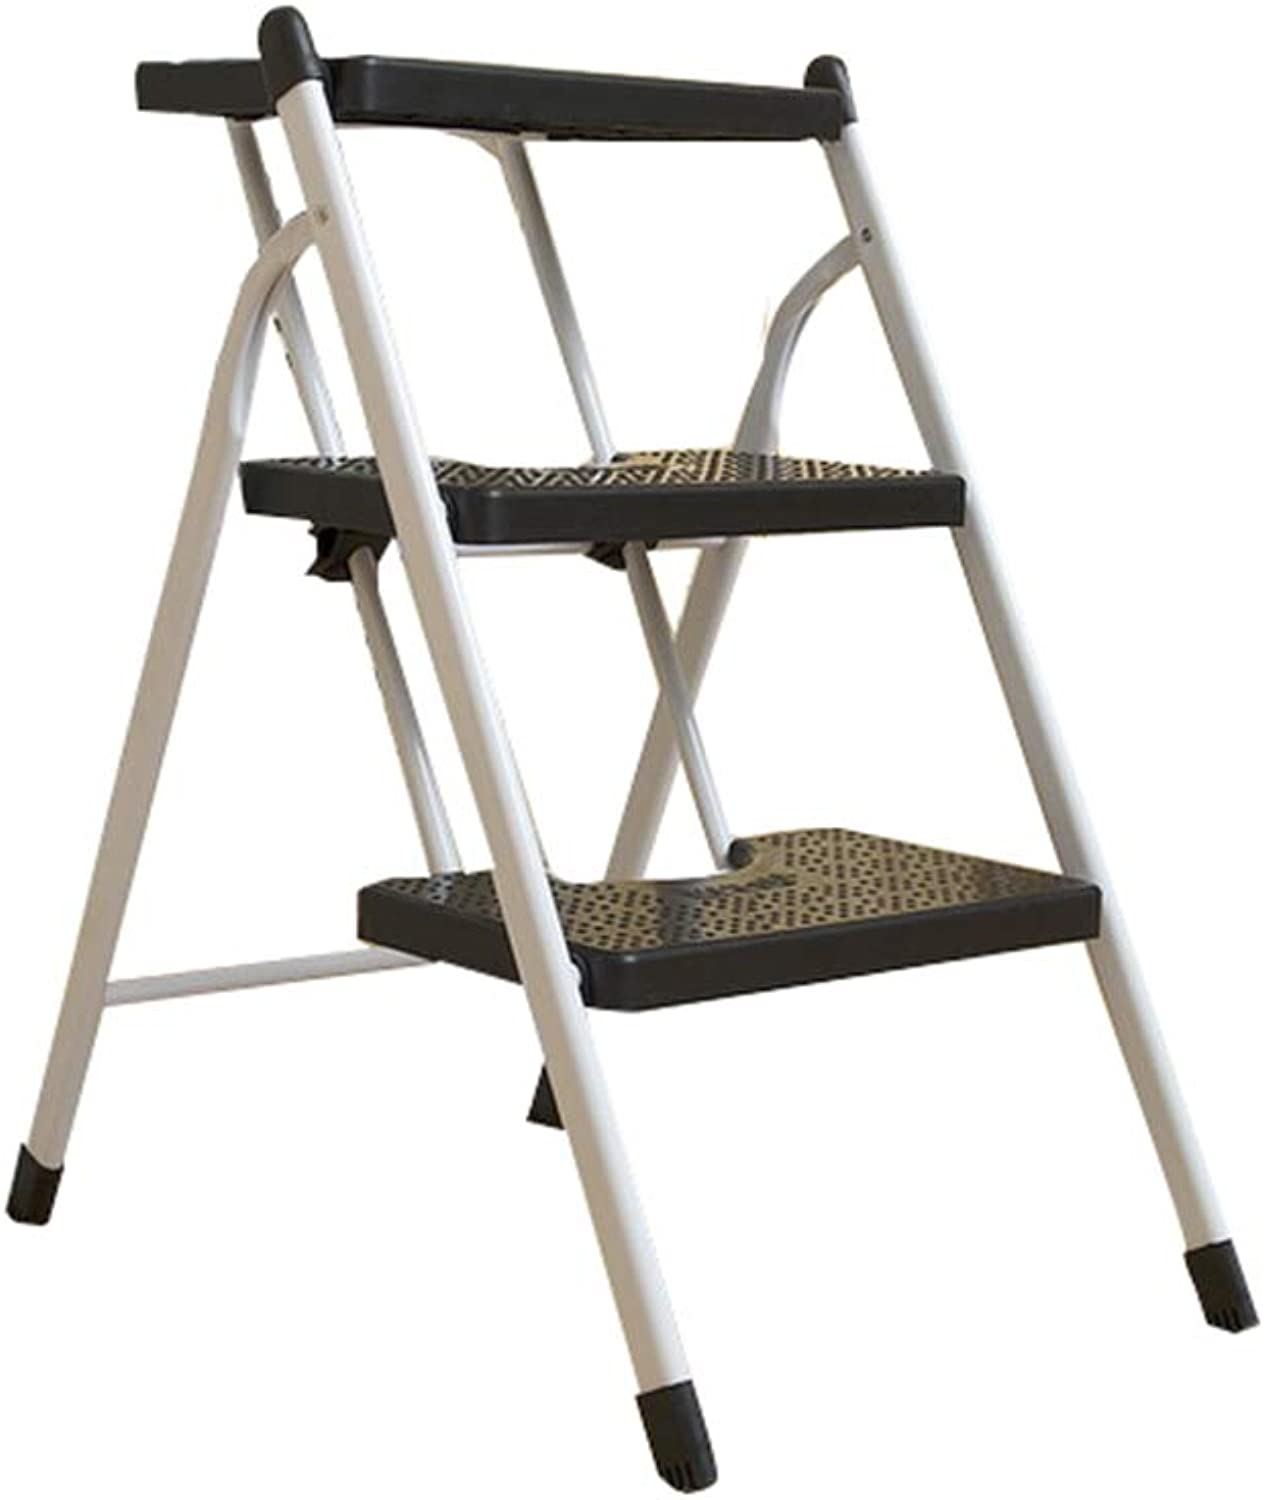 European standard -3.85m+hook Step Stool Telescopic Ladder - Household Thick Folding Ladder, Lifting Stairs Aluminum Ladder, Engineering Ladder - with Hook - 11 Sizes (Size   European Standard -3.85m+Hook)